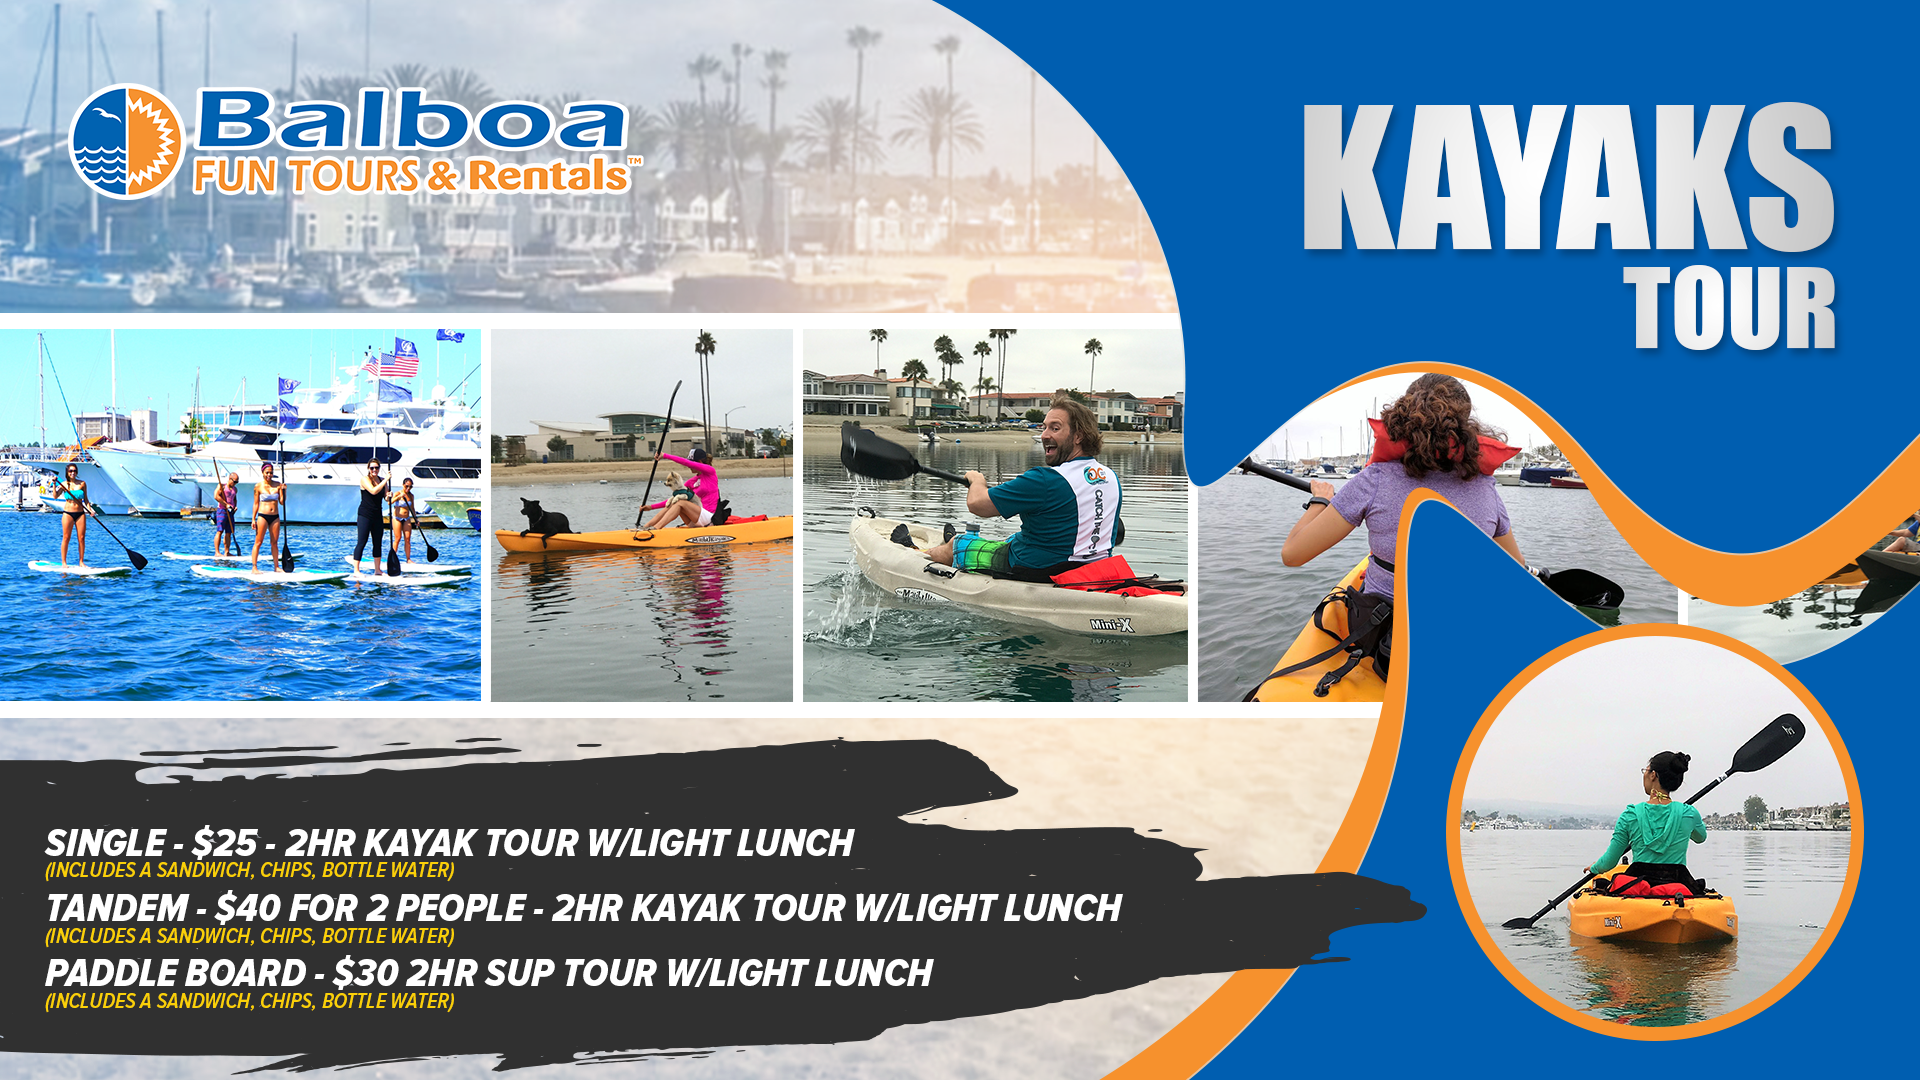 Balboa Kayak Tours